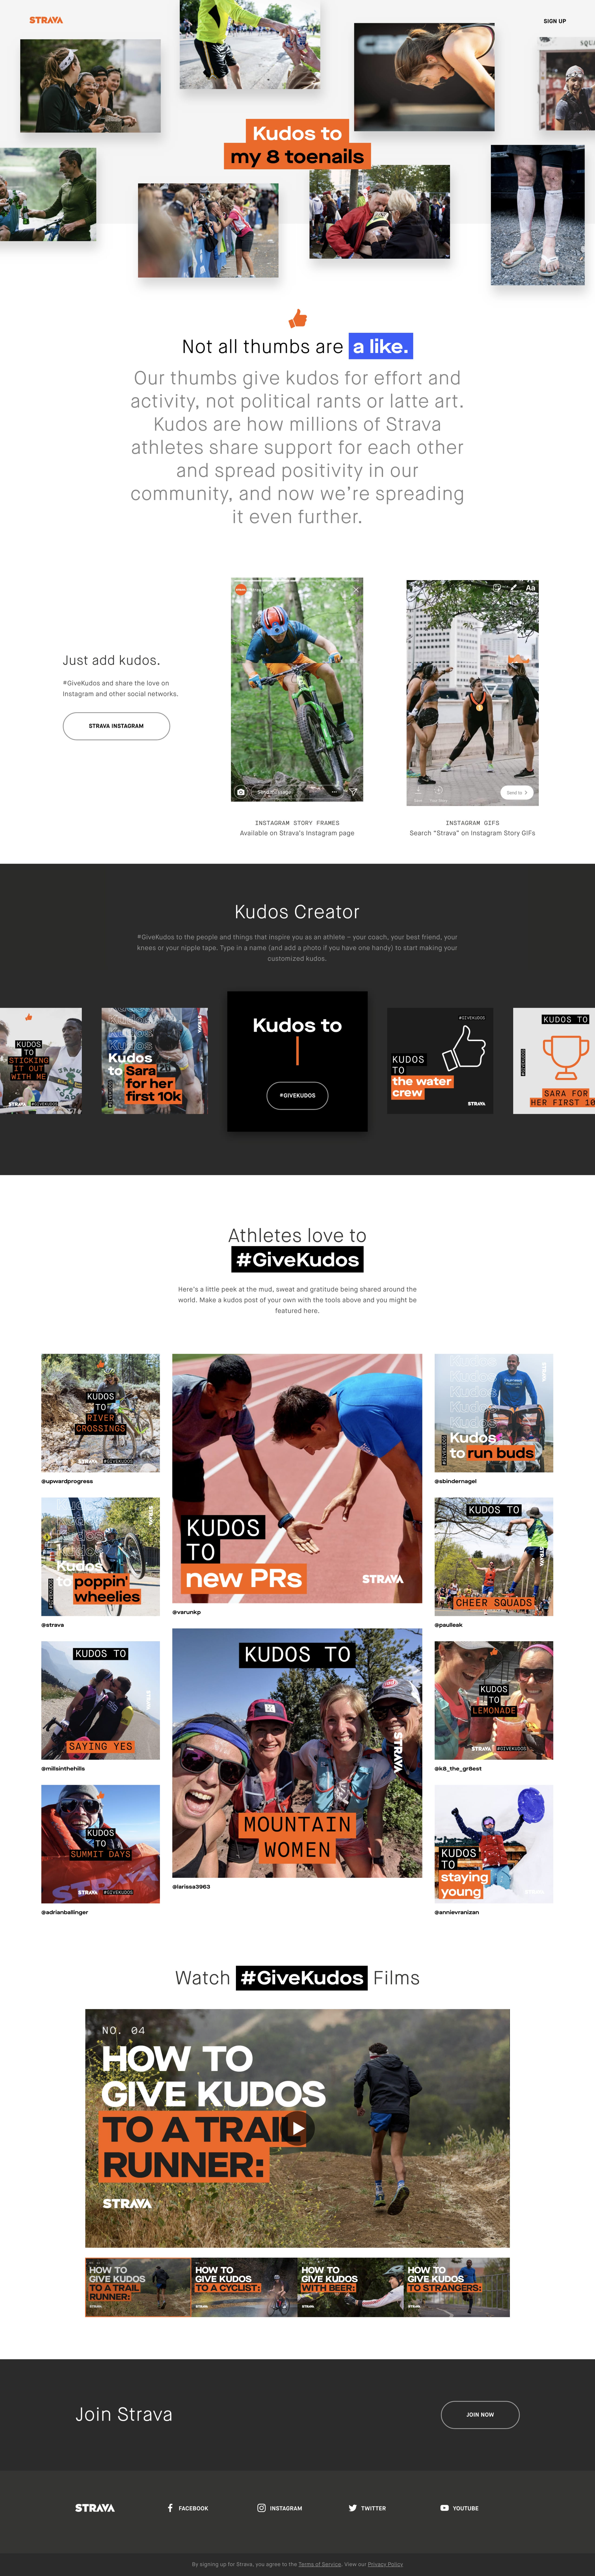 Strava – #GiveKudos Website Screenshot